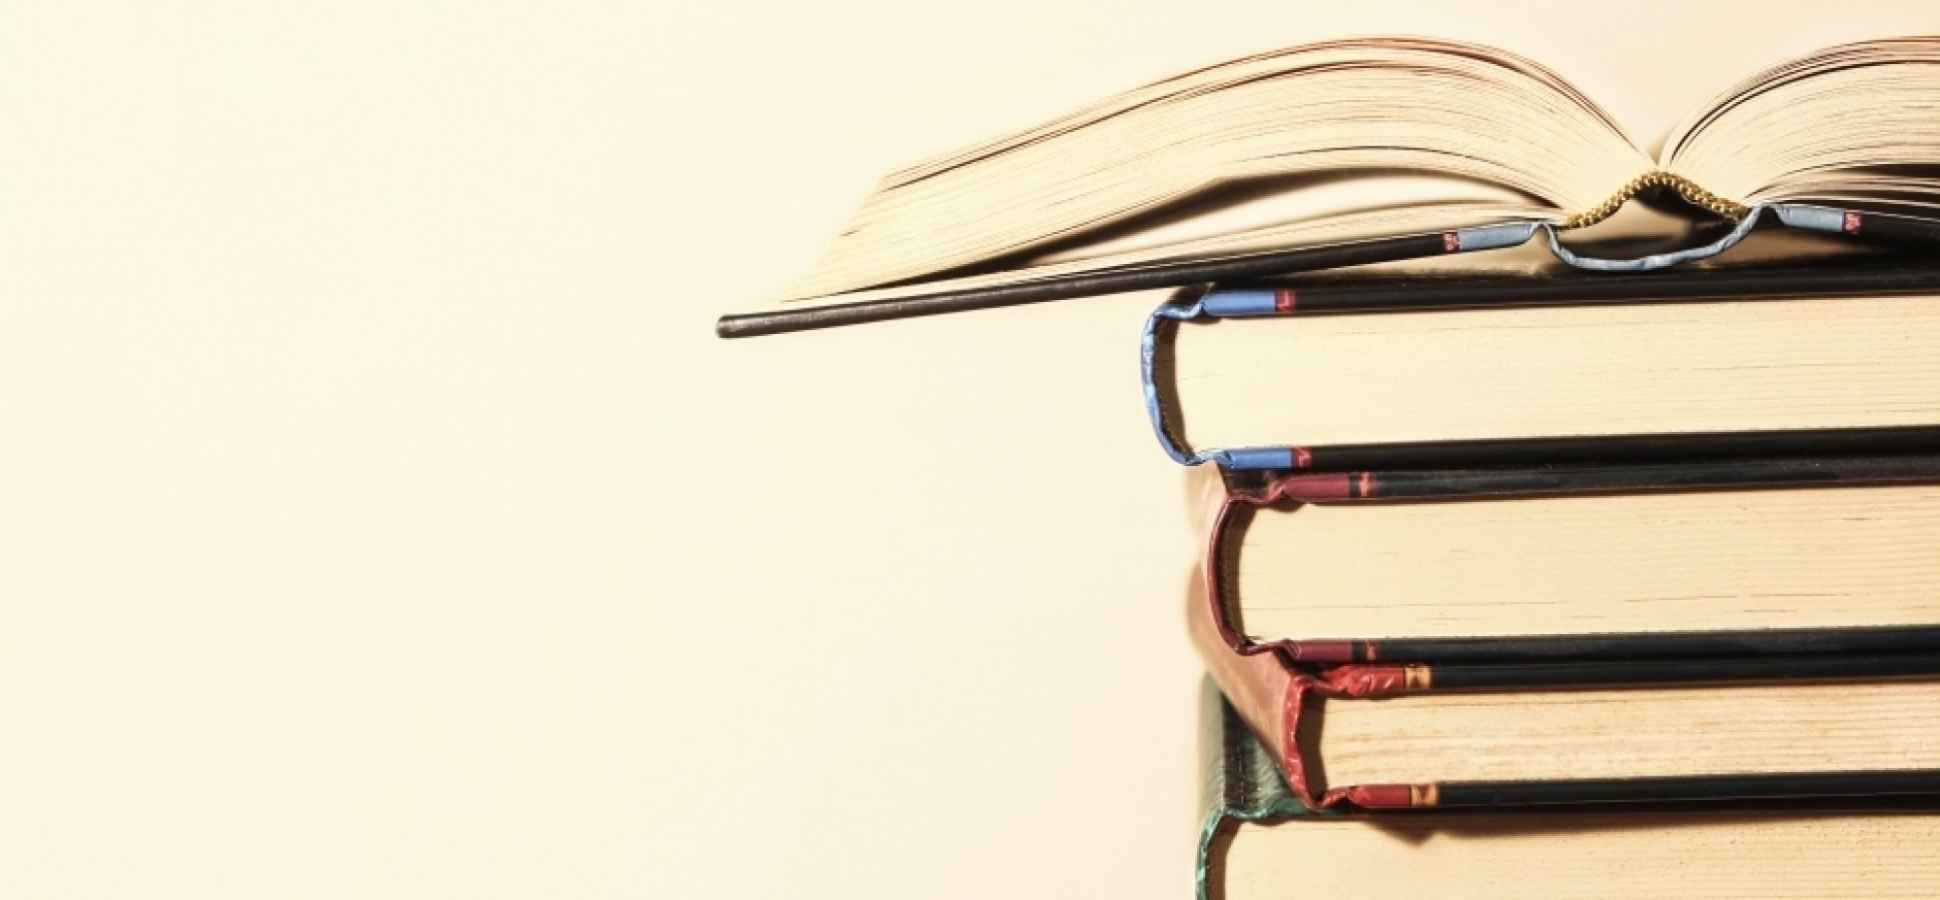 5 Must-Read Books on Technology and Innovation